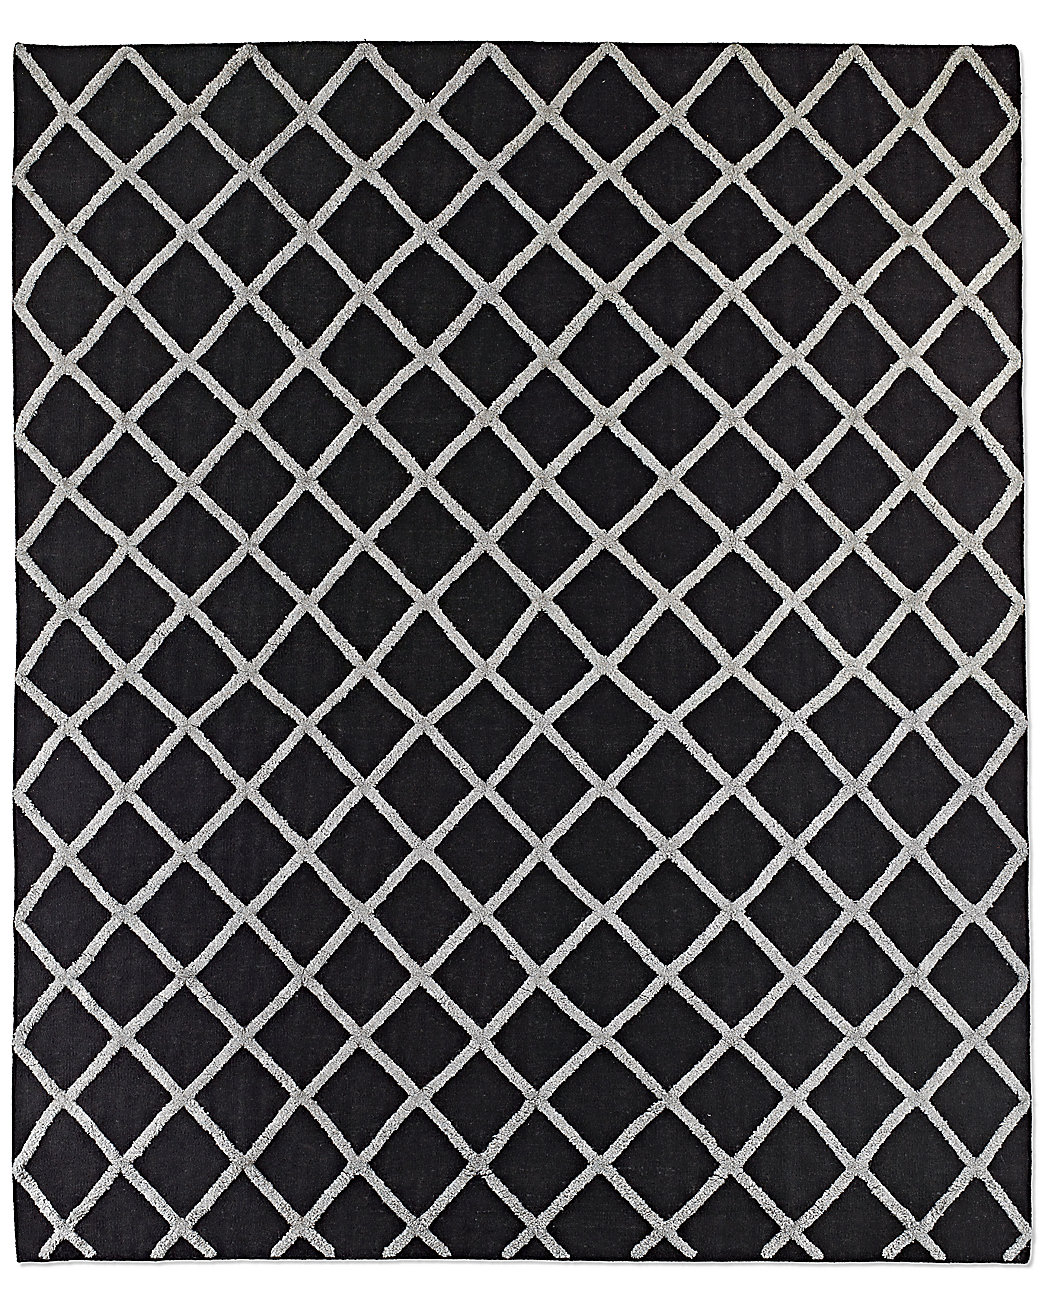 Diamante Flatweave Linen Rug - Black/Grey